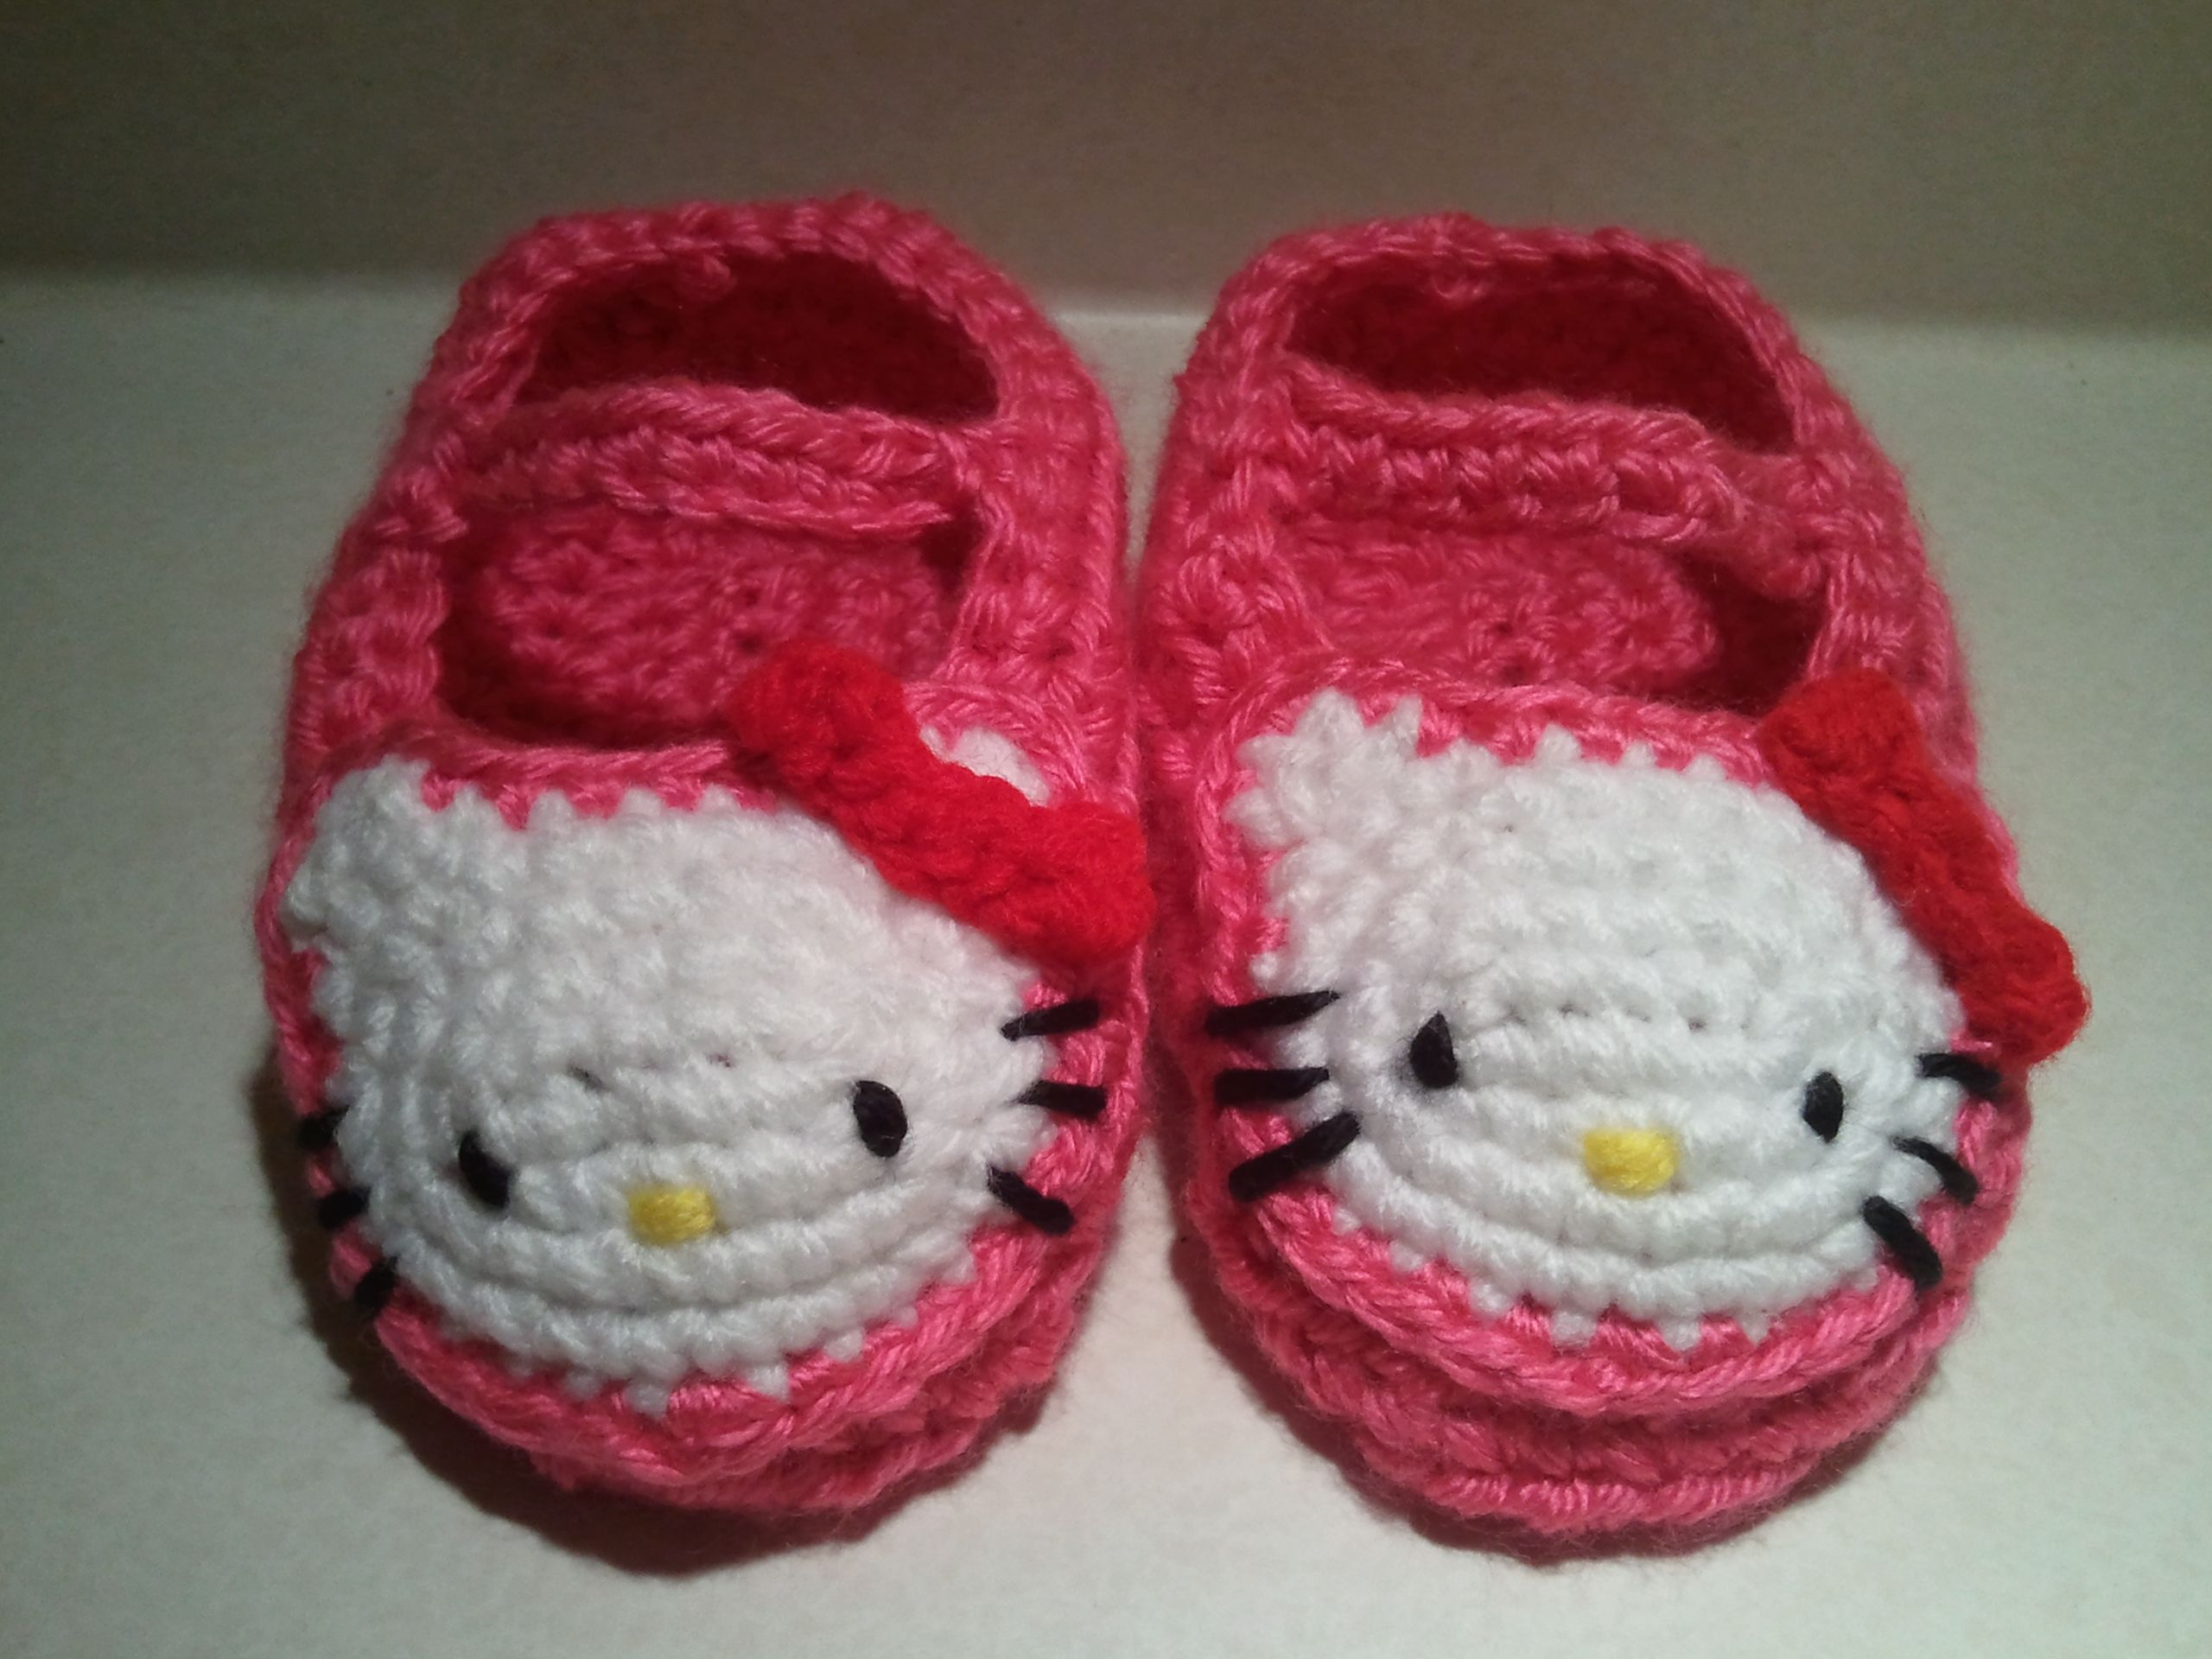 Dear Mamaw I Would Love To Have A Pair Of These Cute